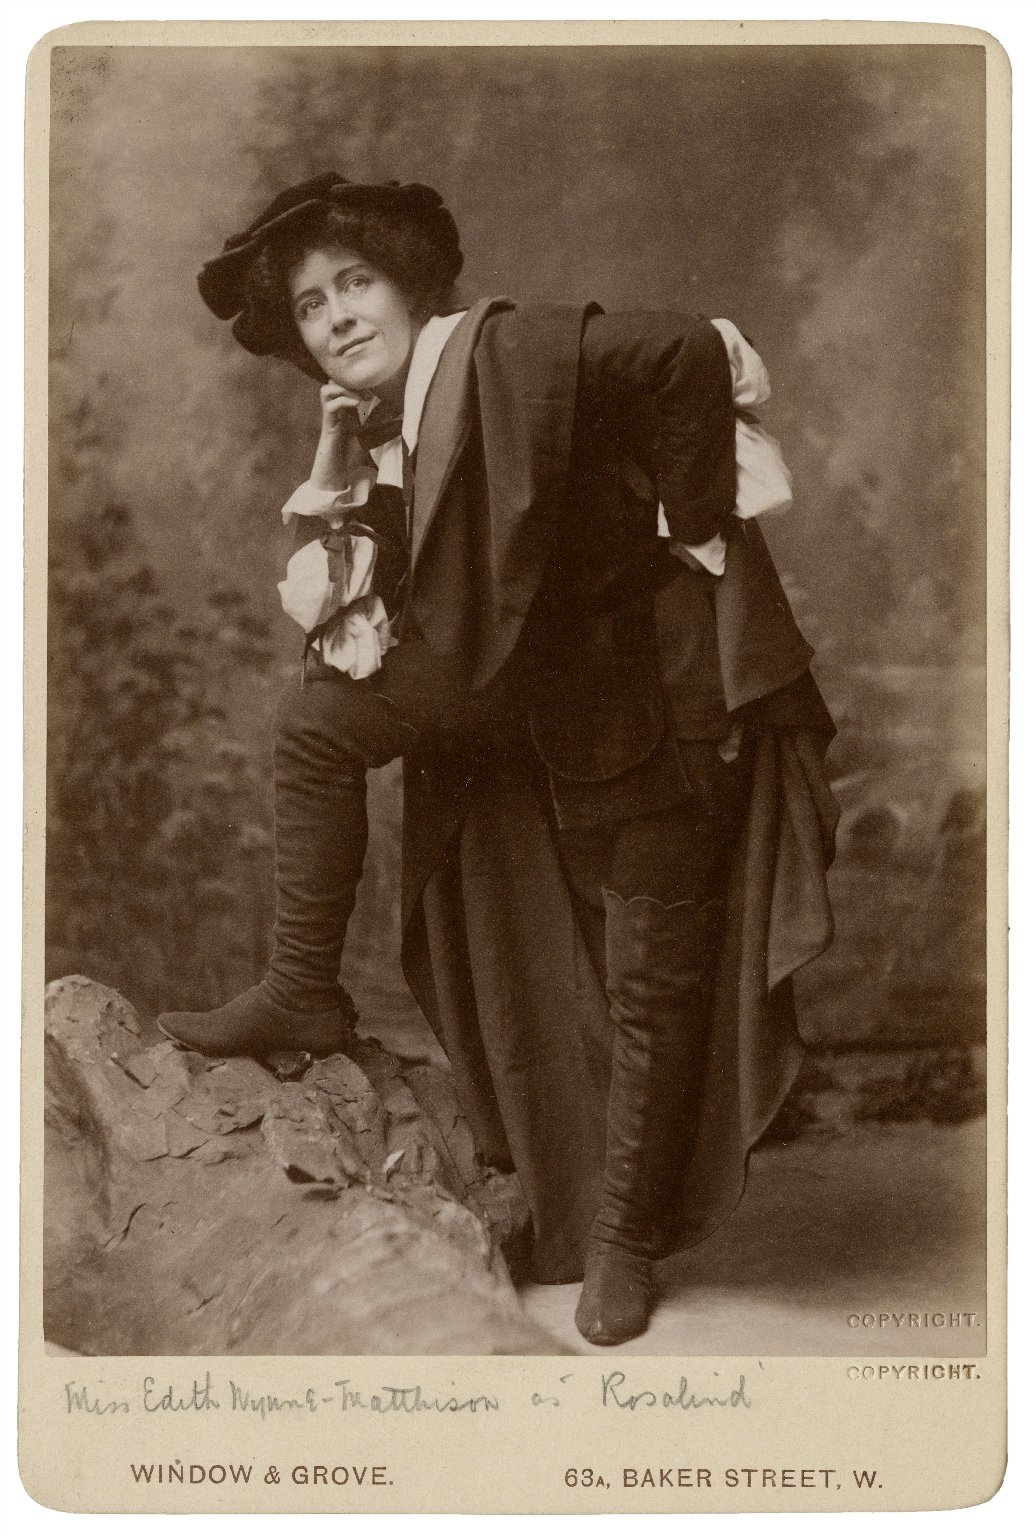 Miss Edith Wynne Matthison as Rosalind [in Shakespeare's As you like it] [graphic] / Window & Grove.